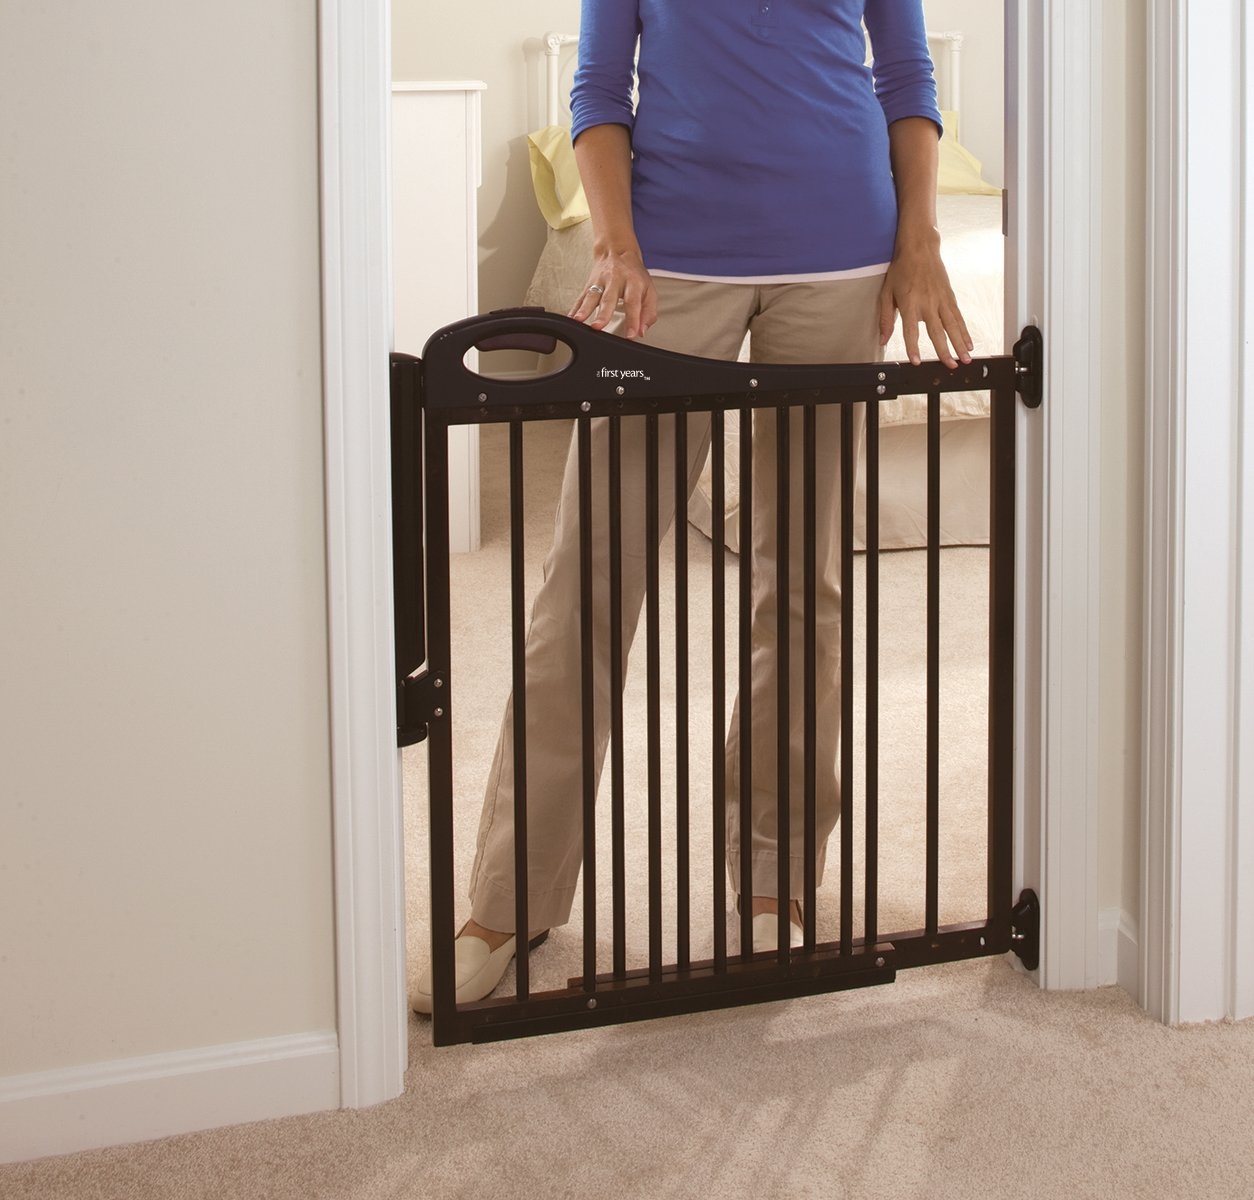 Amazon.com : The First Years Top of Stair Decor Slimline Gate ...